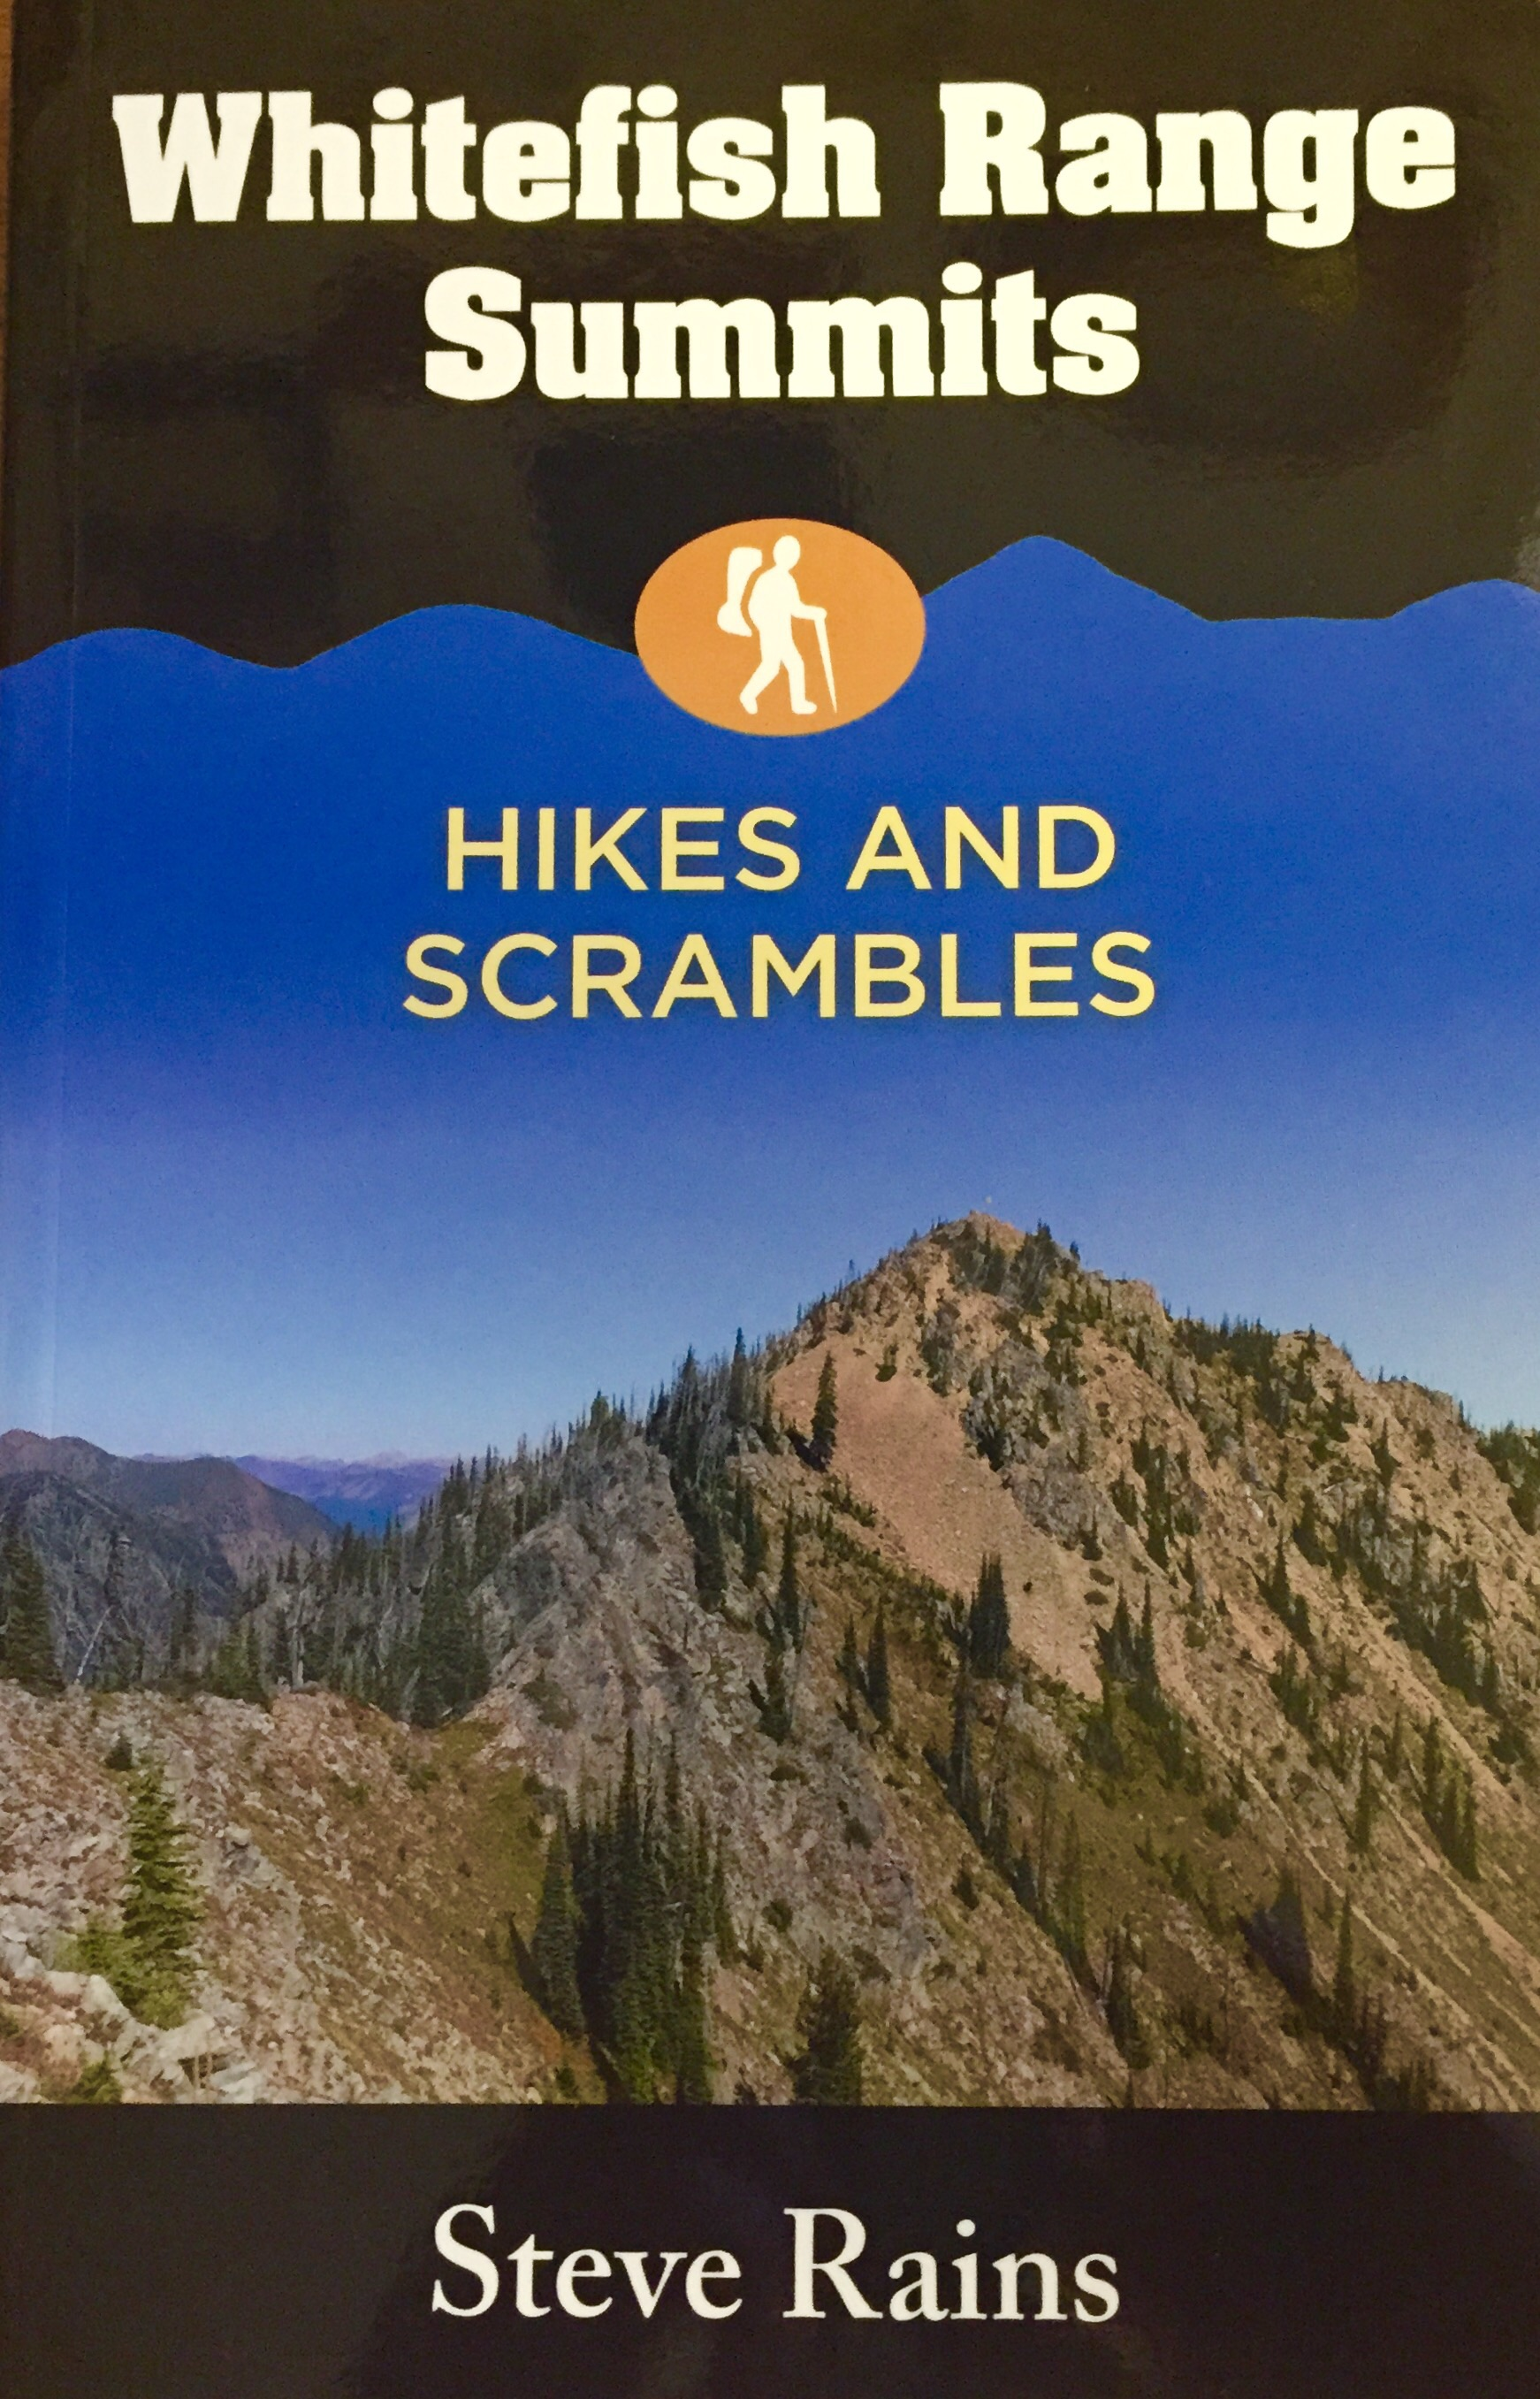 Whitefish Range Summits-Hikes and Scrambles